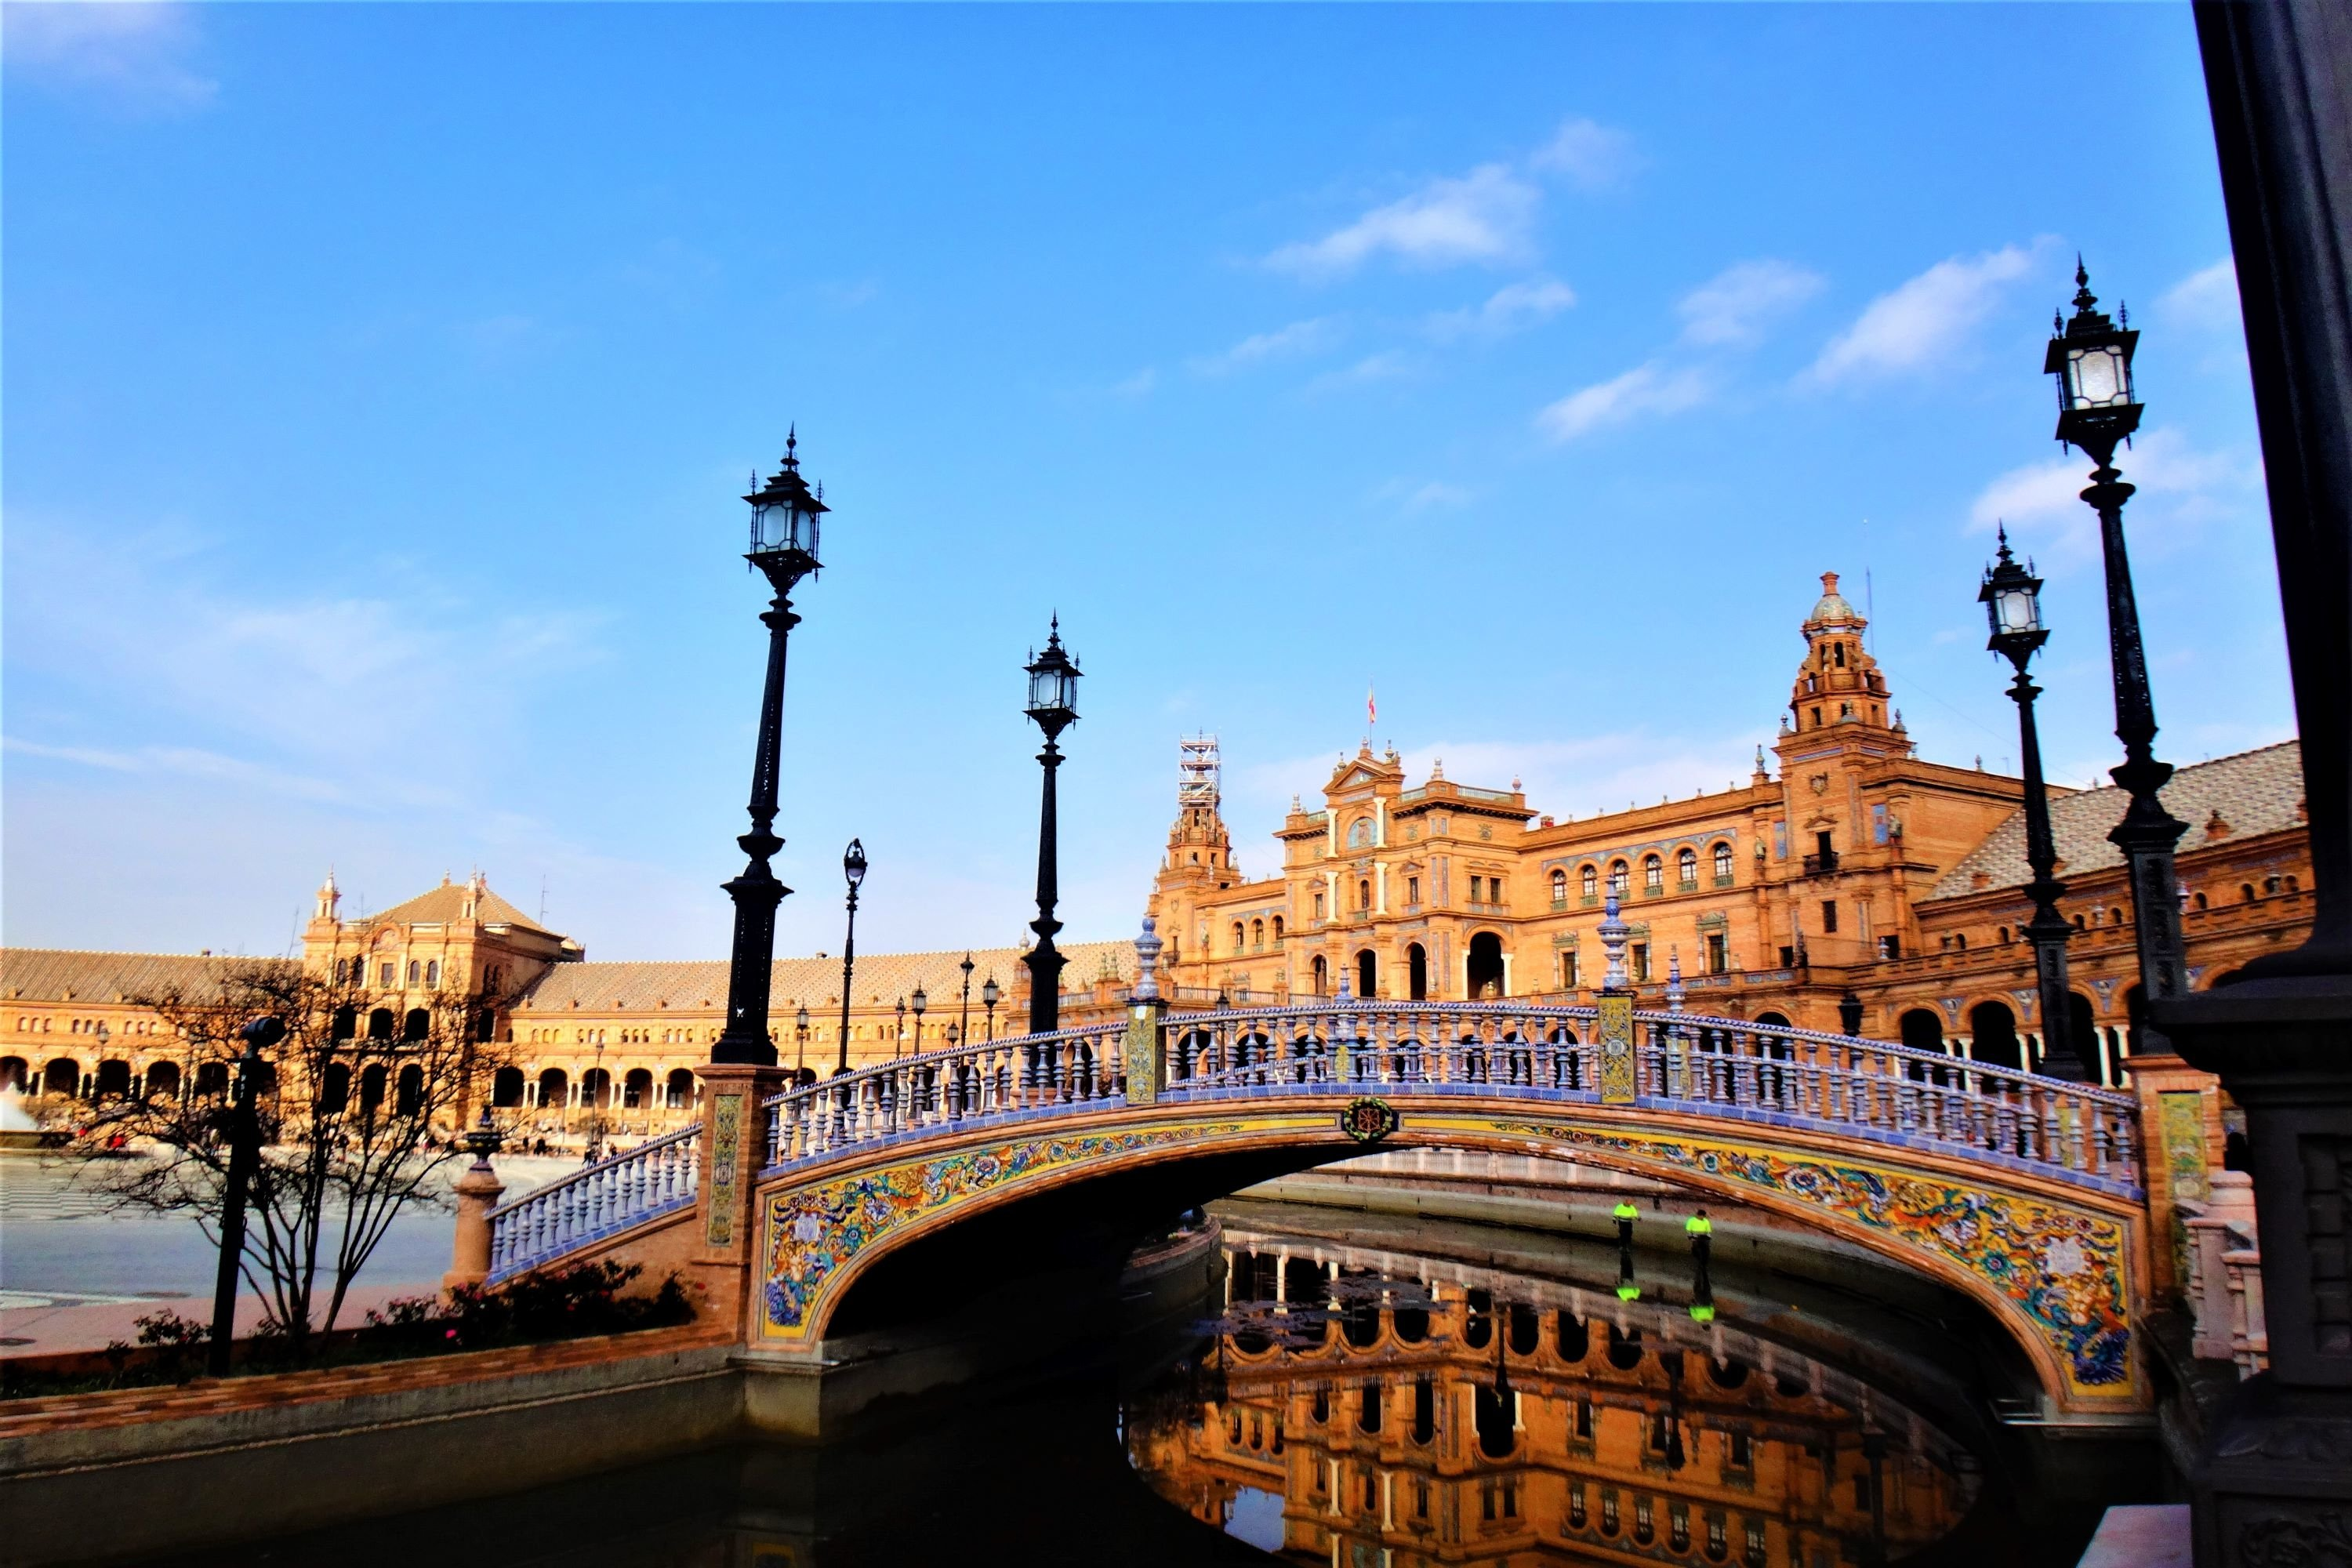 Fantastic architecture of Seville, Spain example image 1